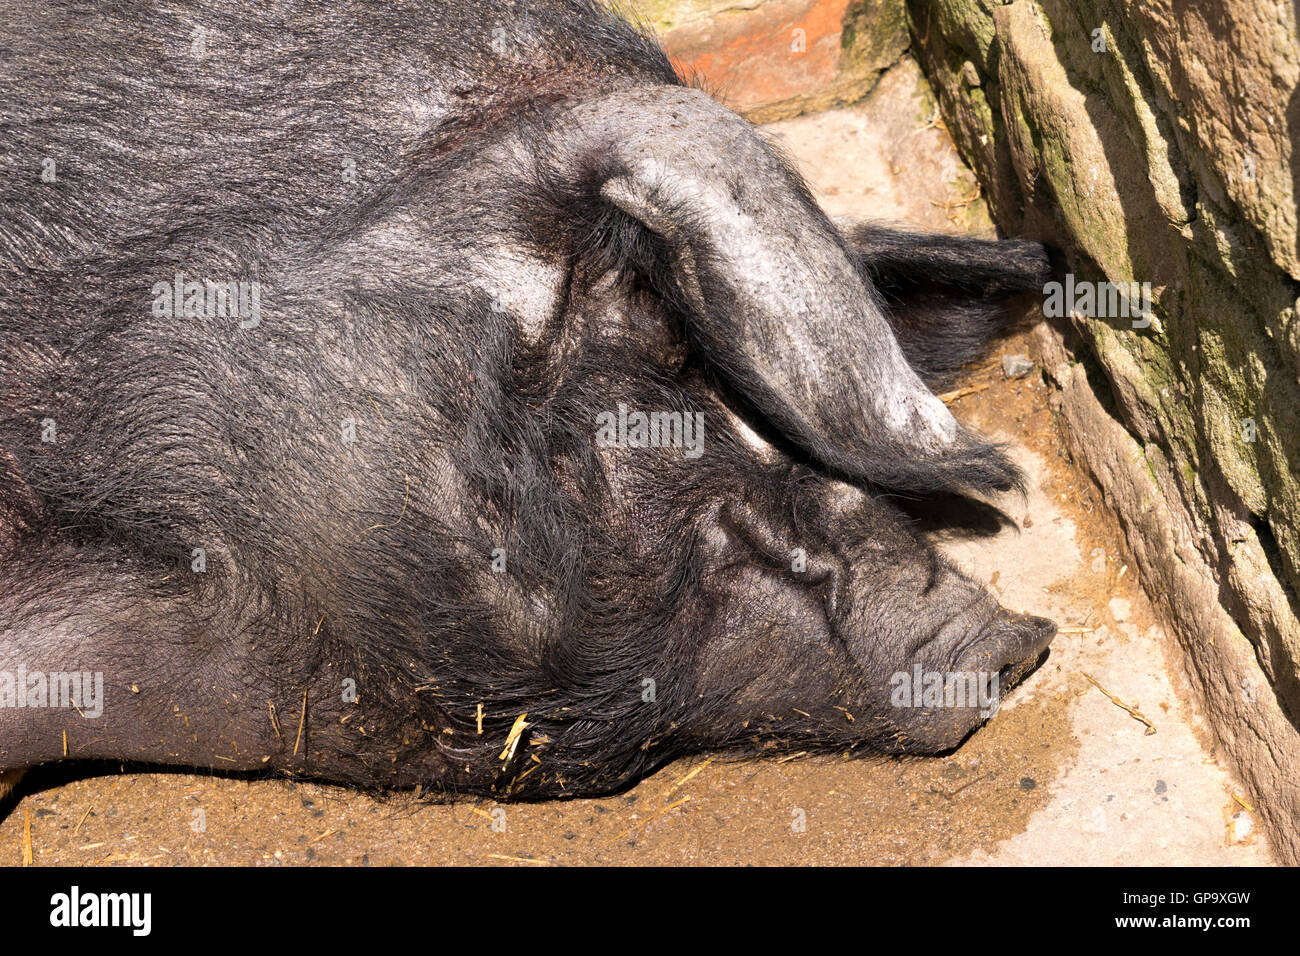 Black pig naps and sunbathes in Beamish Museum - Stock Image